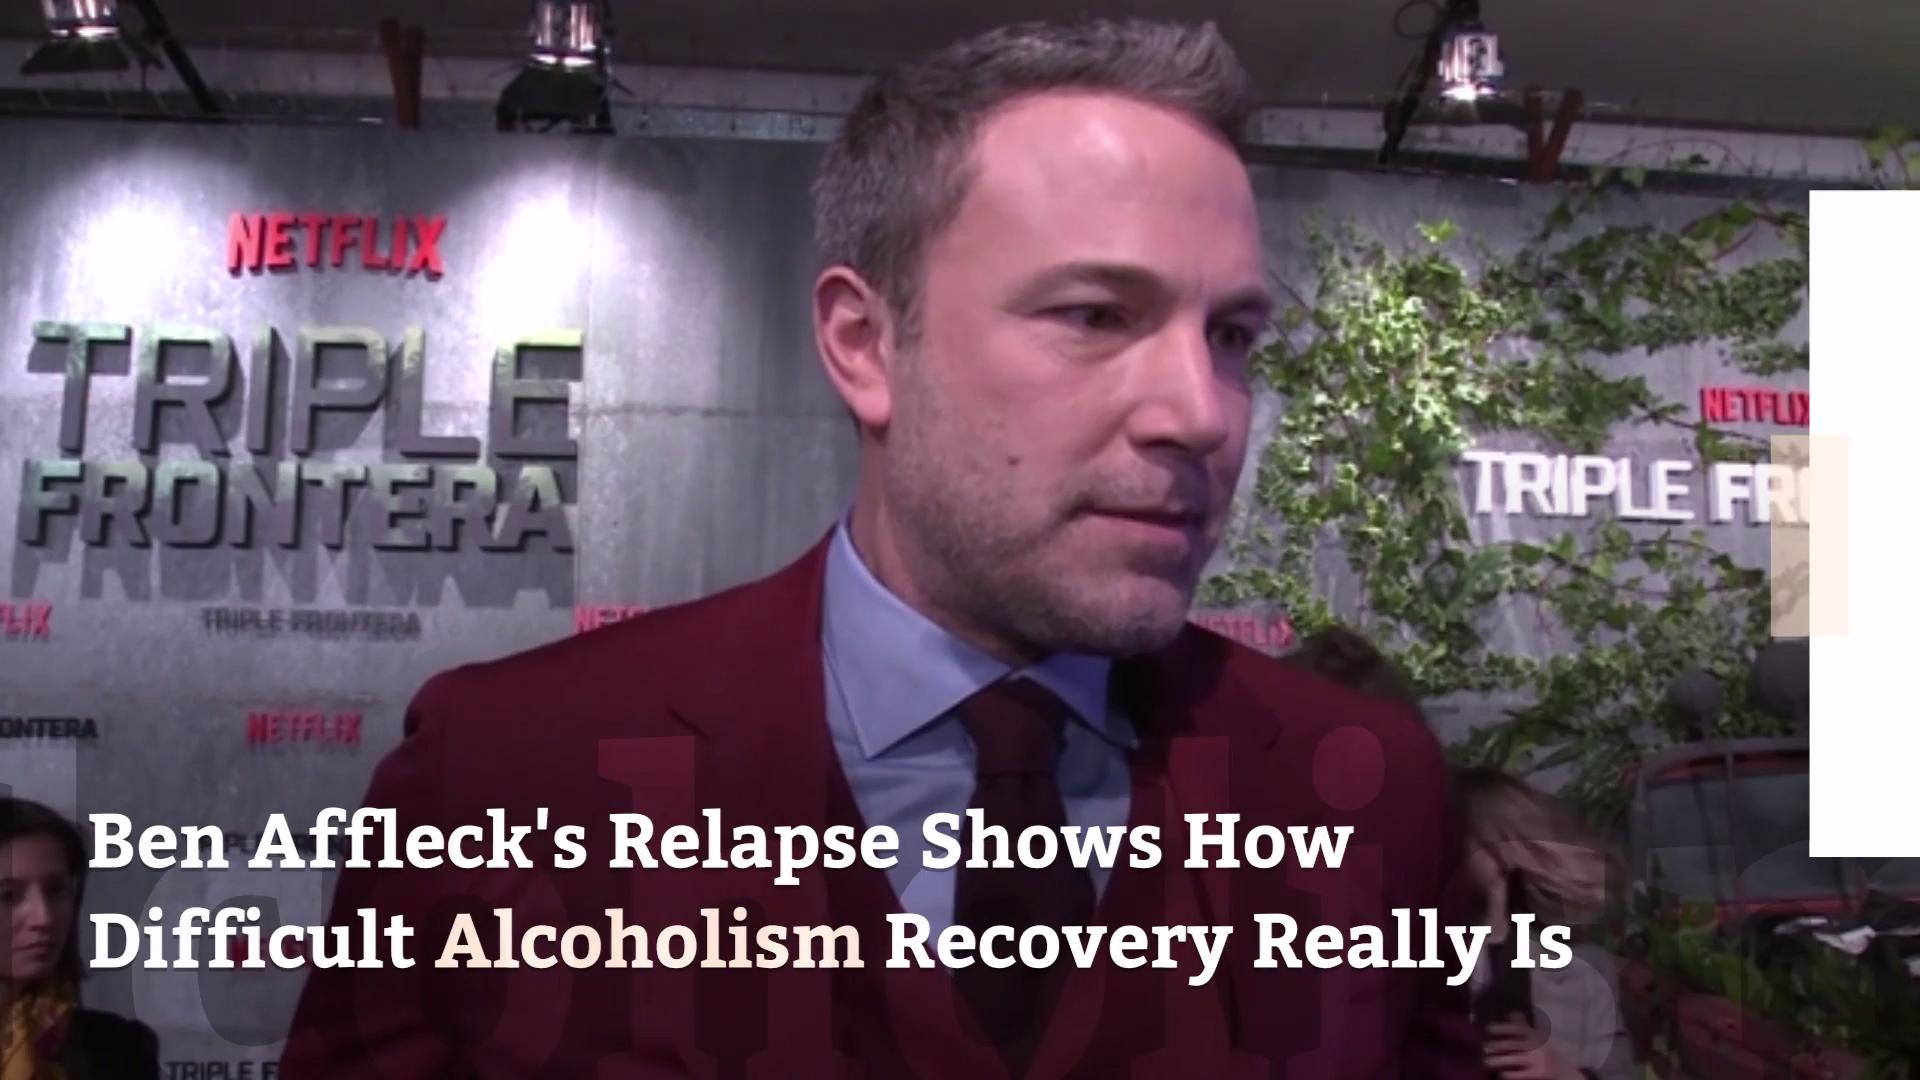 Ben Affleck's Relapse Shows How Difficult Alcoholism Recovery Really Is